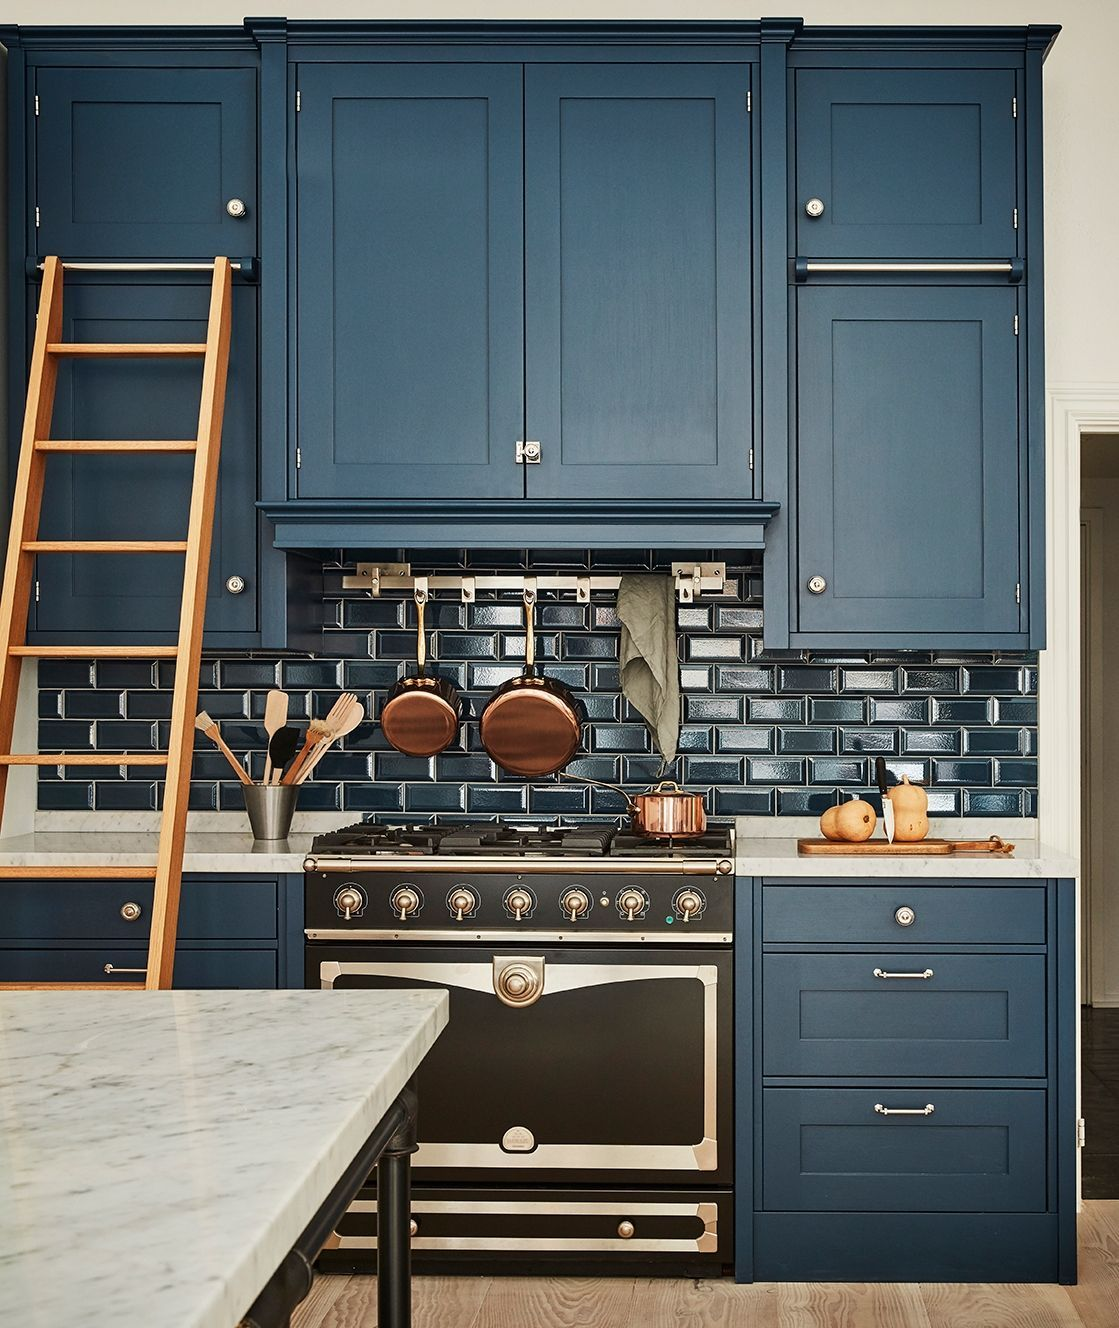 love the ladder idea for floor to ceiling cabinets in 2020 rustic kitchen blue kitchen on kitchen cabinets to the ceiling id=65300